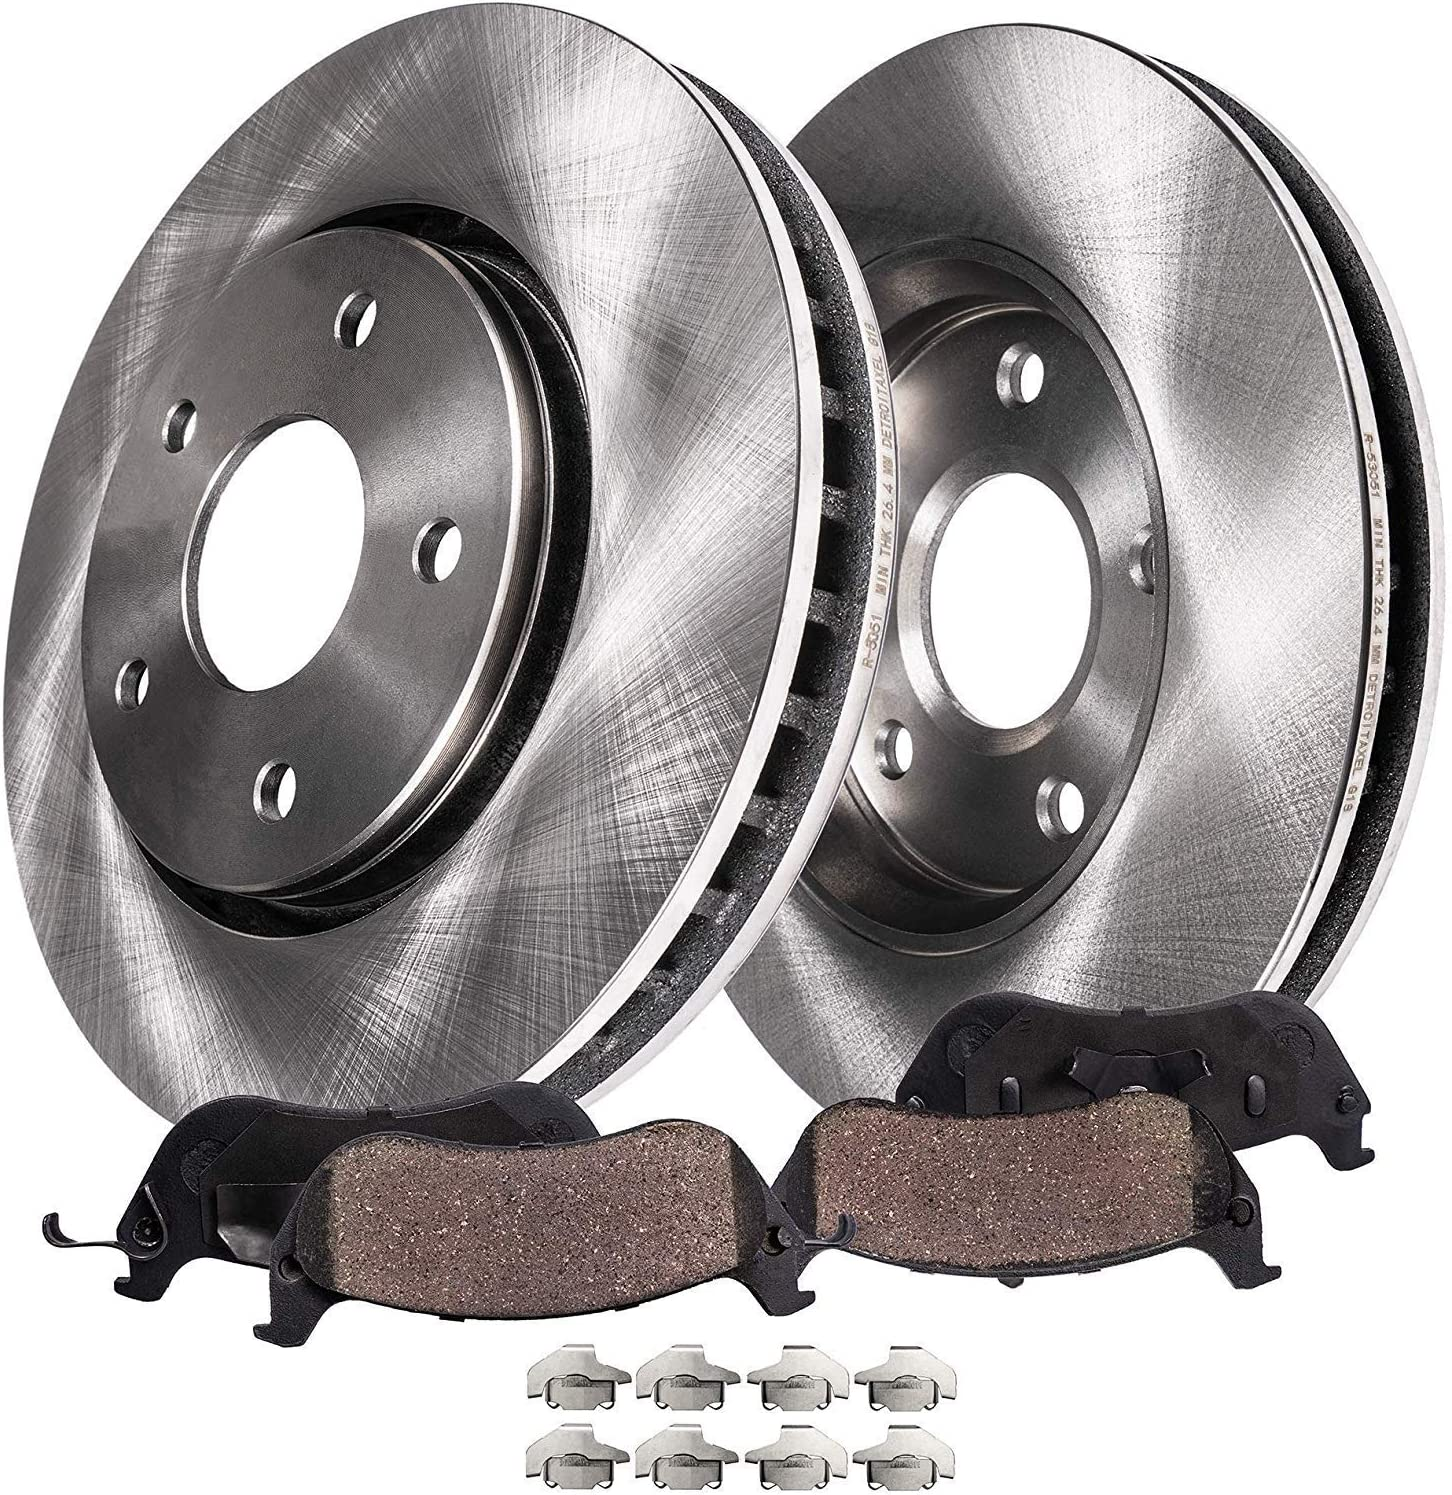 Front Brake Pad and Rotor Kit For 05-10 Honda Odyssey PP83X3